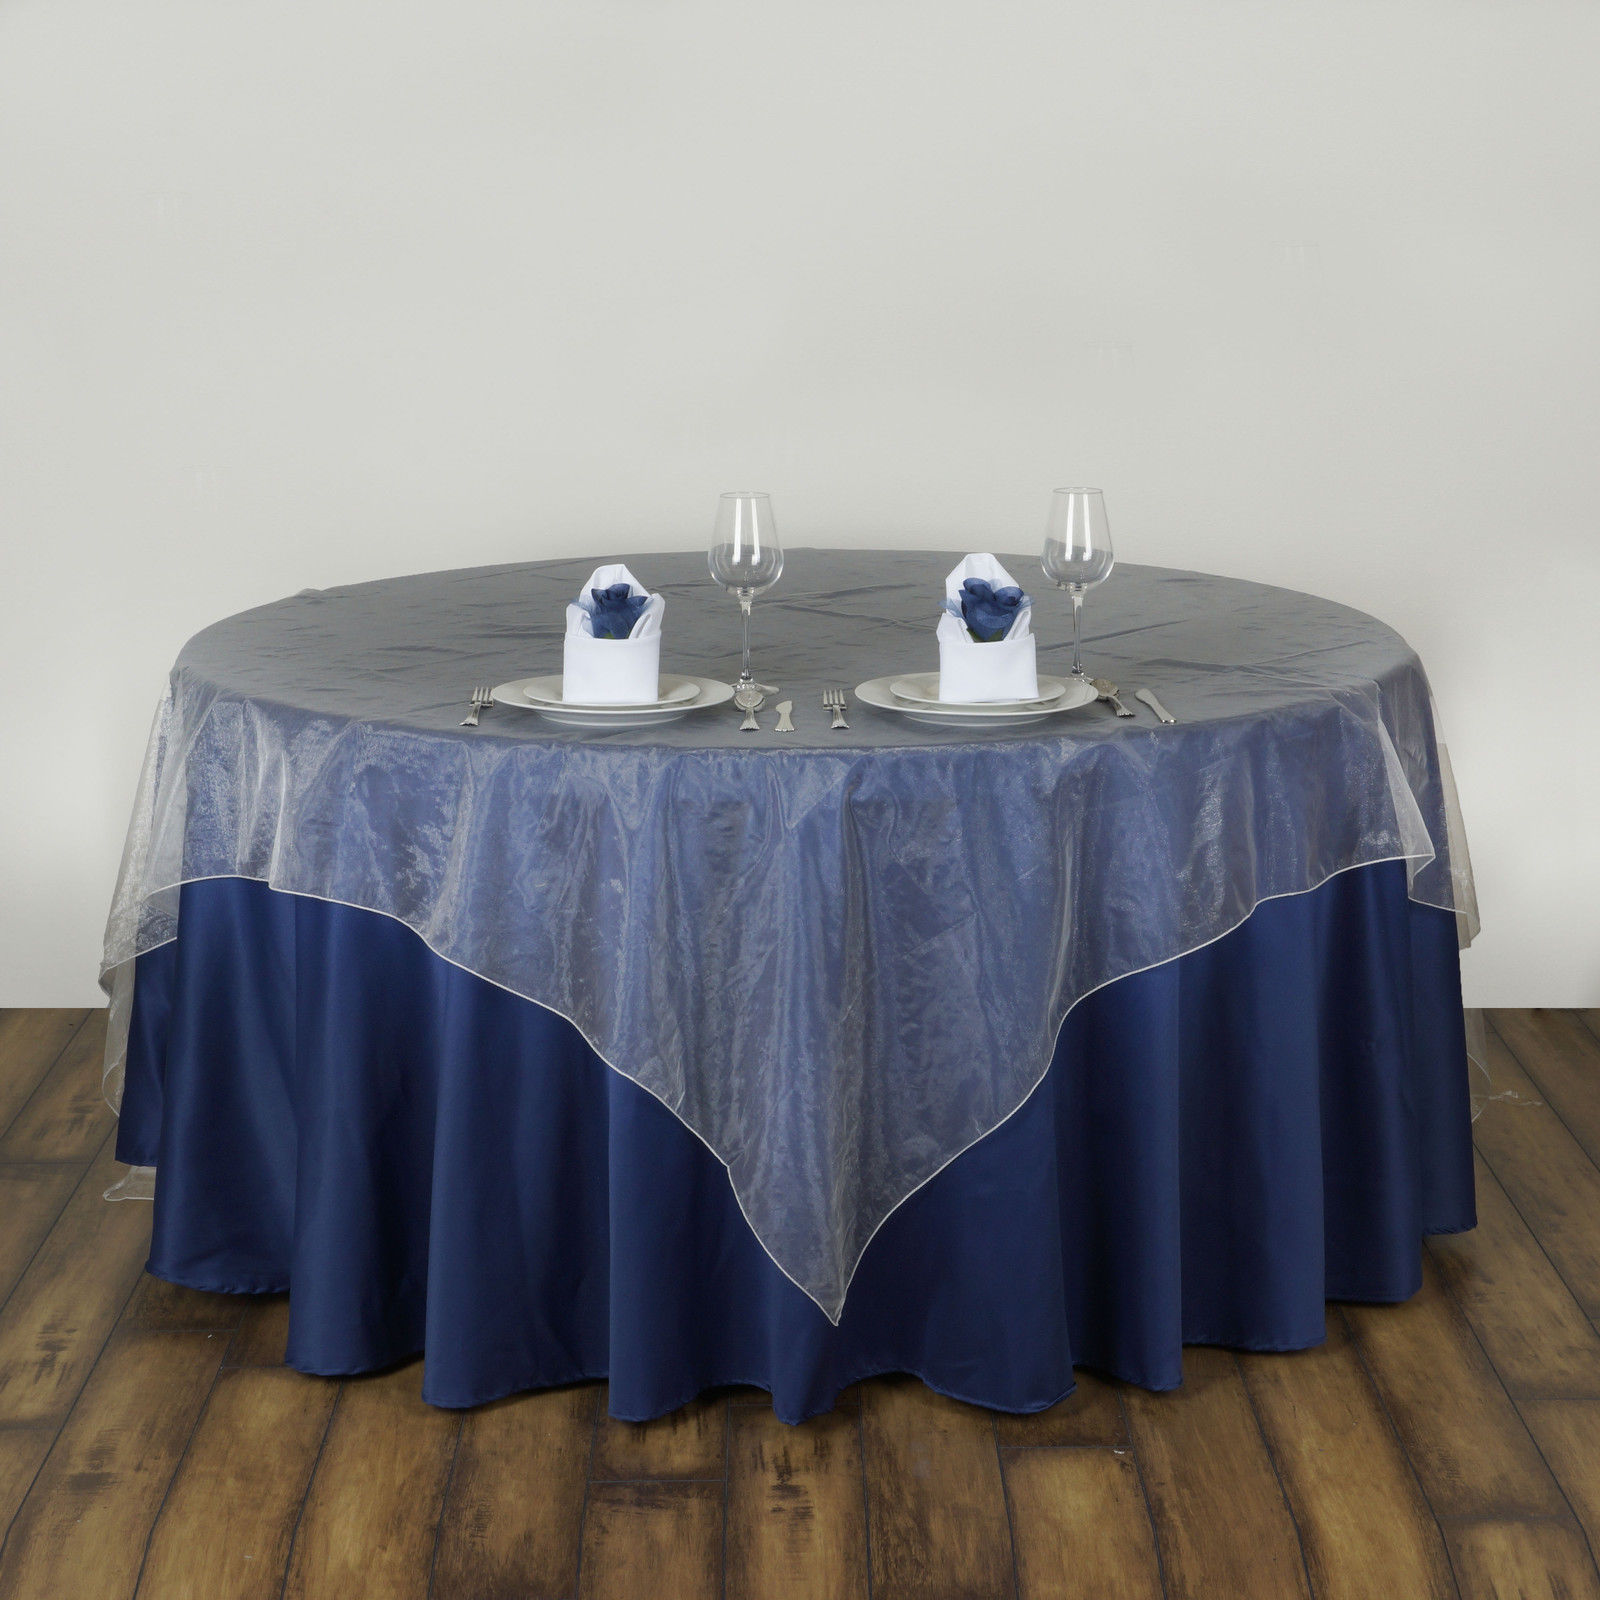 Wedding Table Cover Organza Fabric Square Table Cloth For Wedding Banquet  Party Table Decorations Home Textile